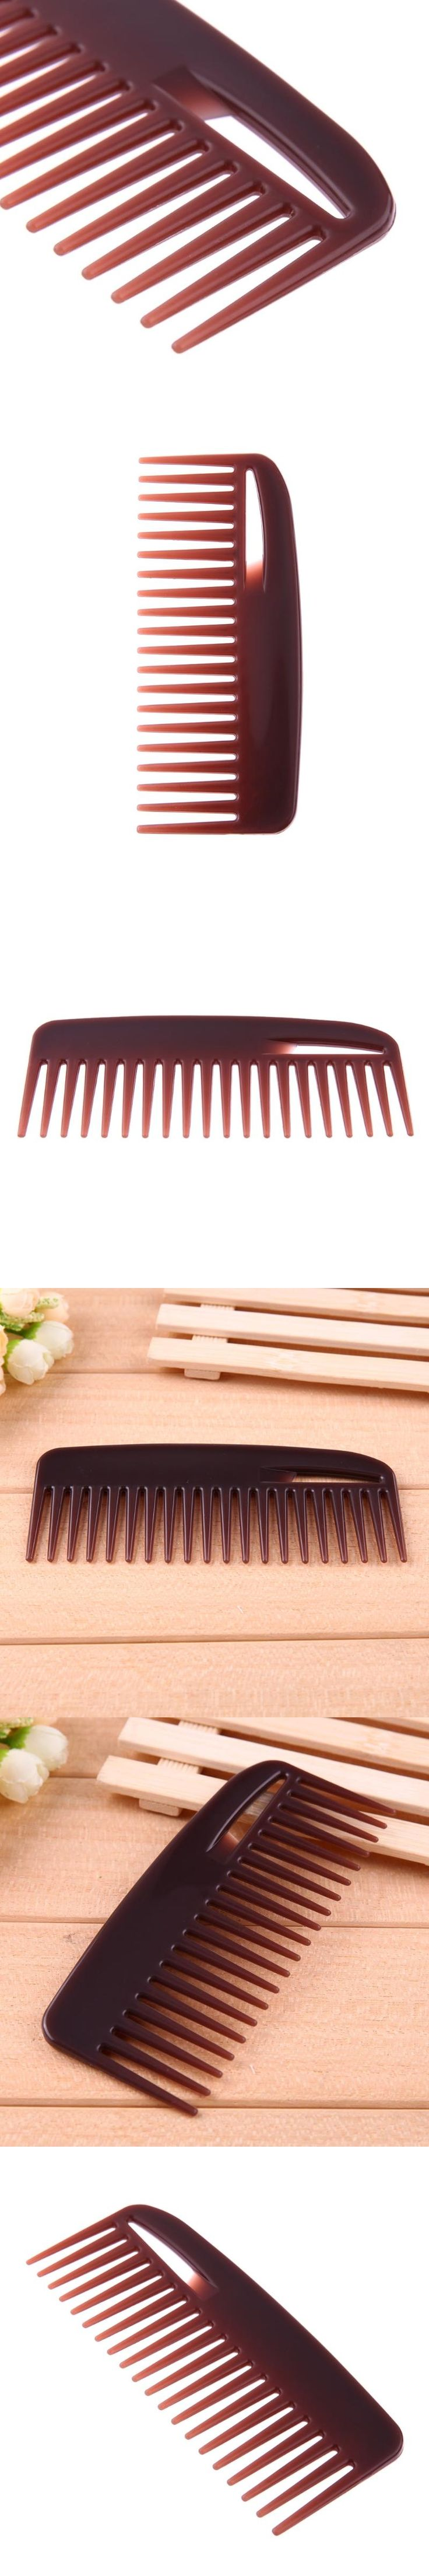 Large Wide Teeth Comb Flat Plastic Wavy Hair Comb Hairstyling Combs Hair Care Professional hairdressing tools